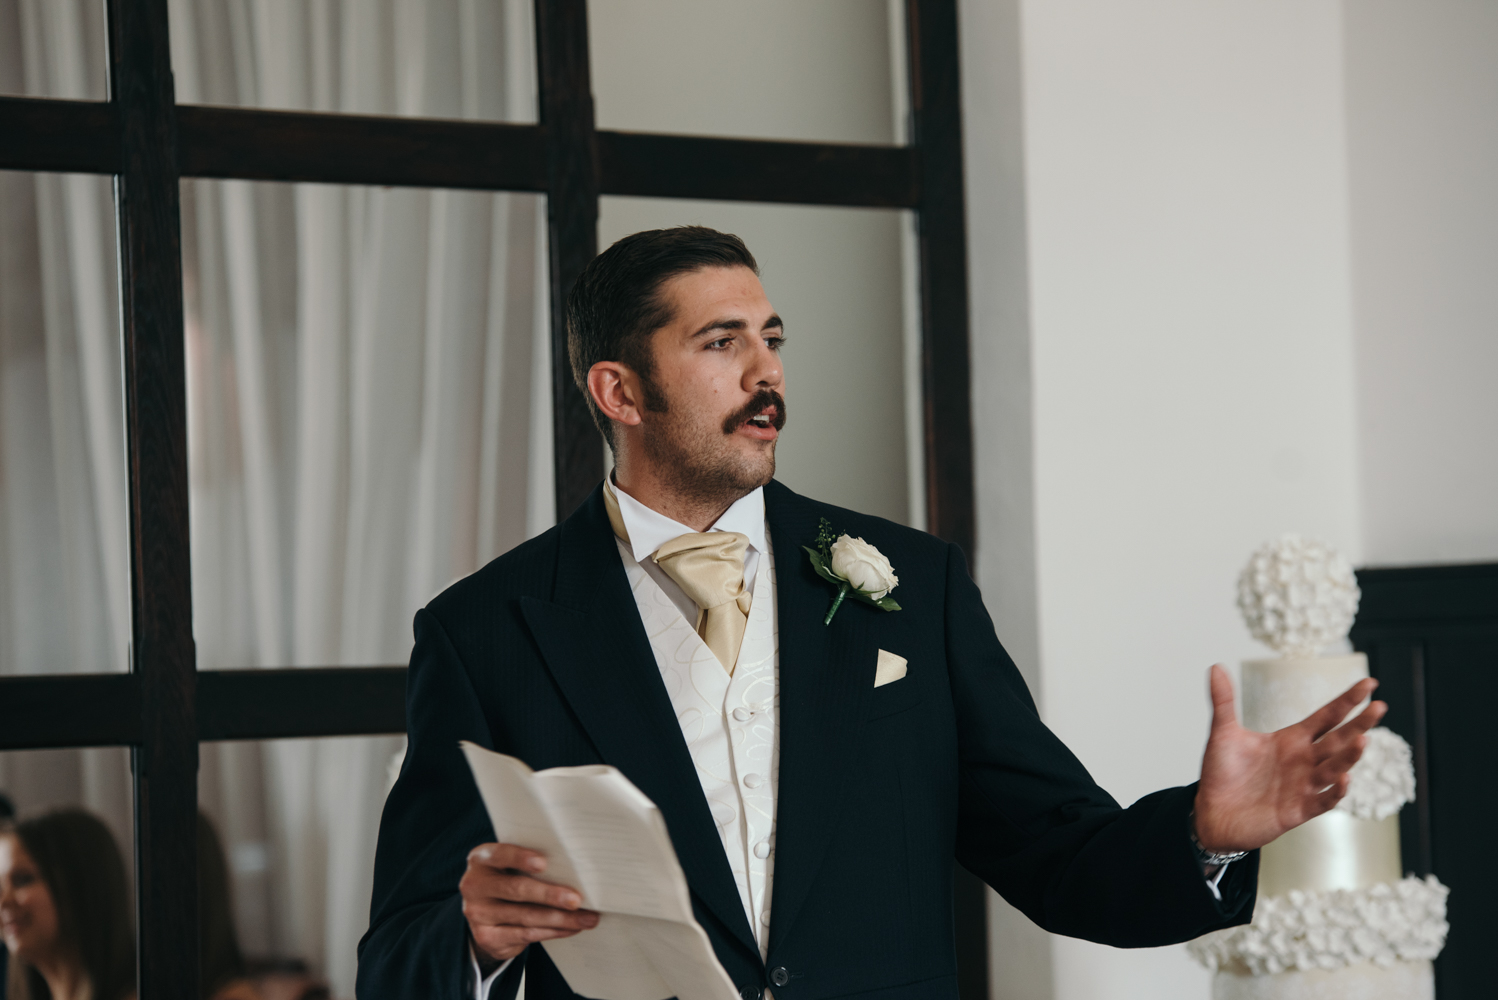 The best man making his speech